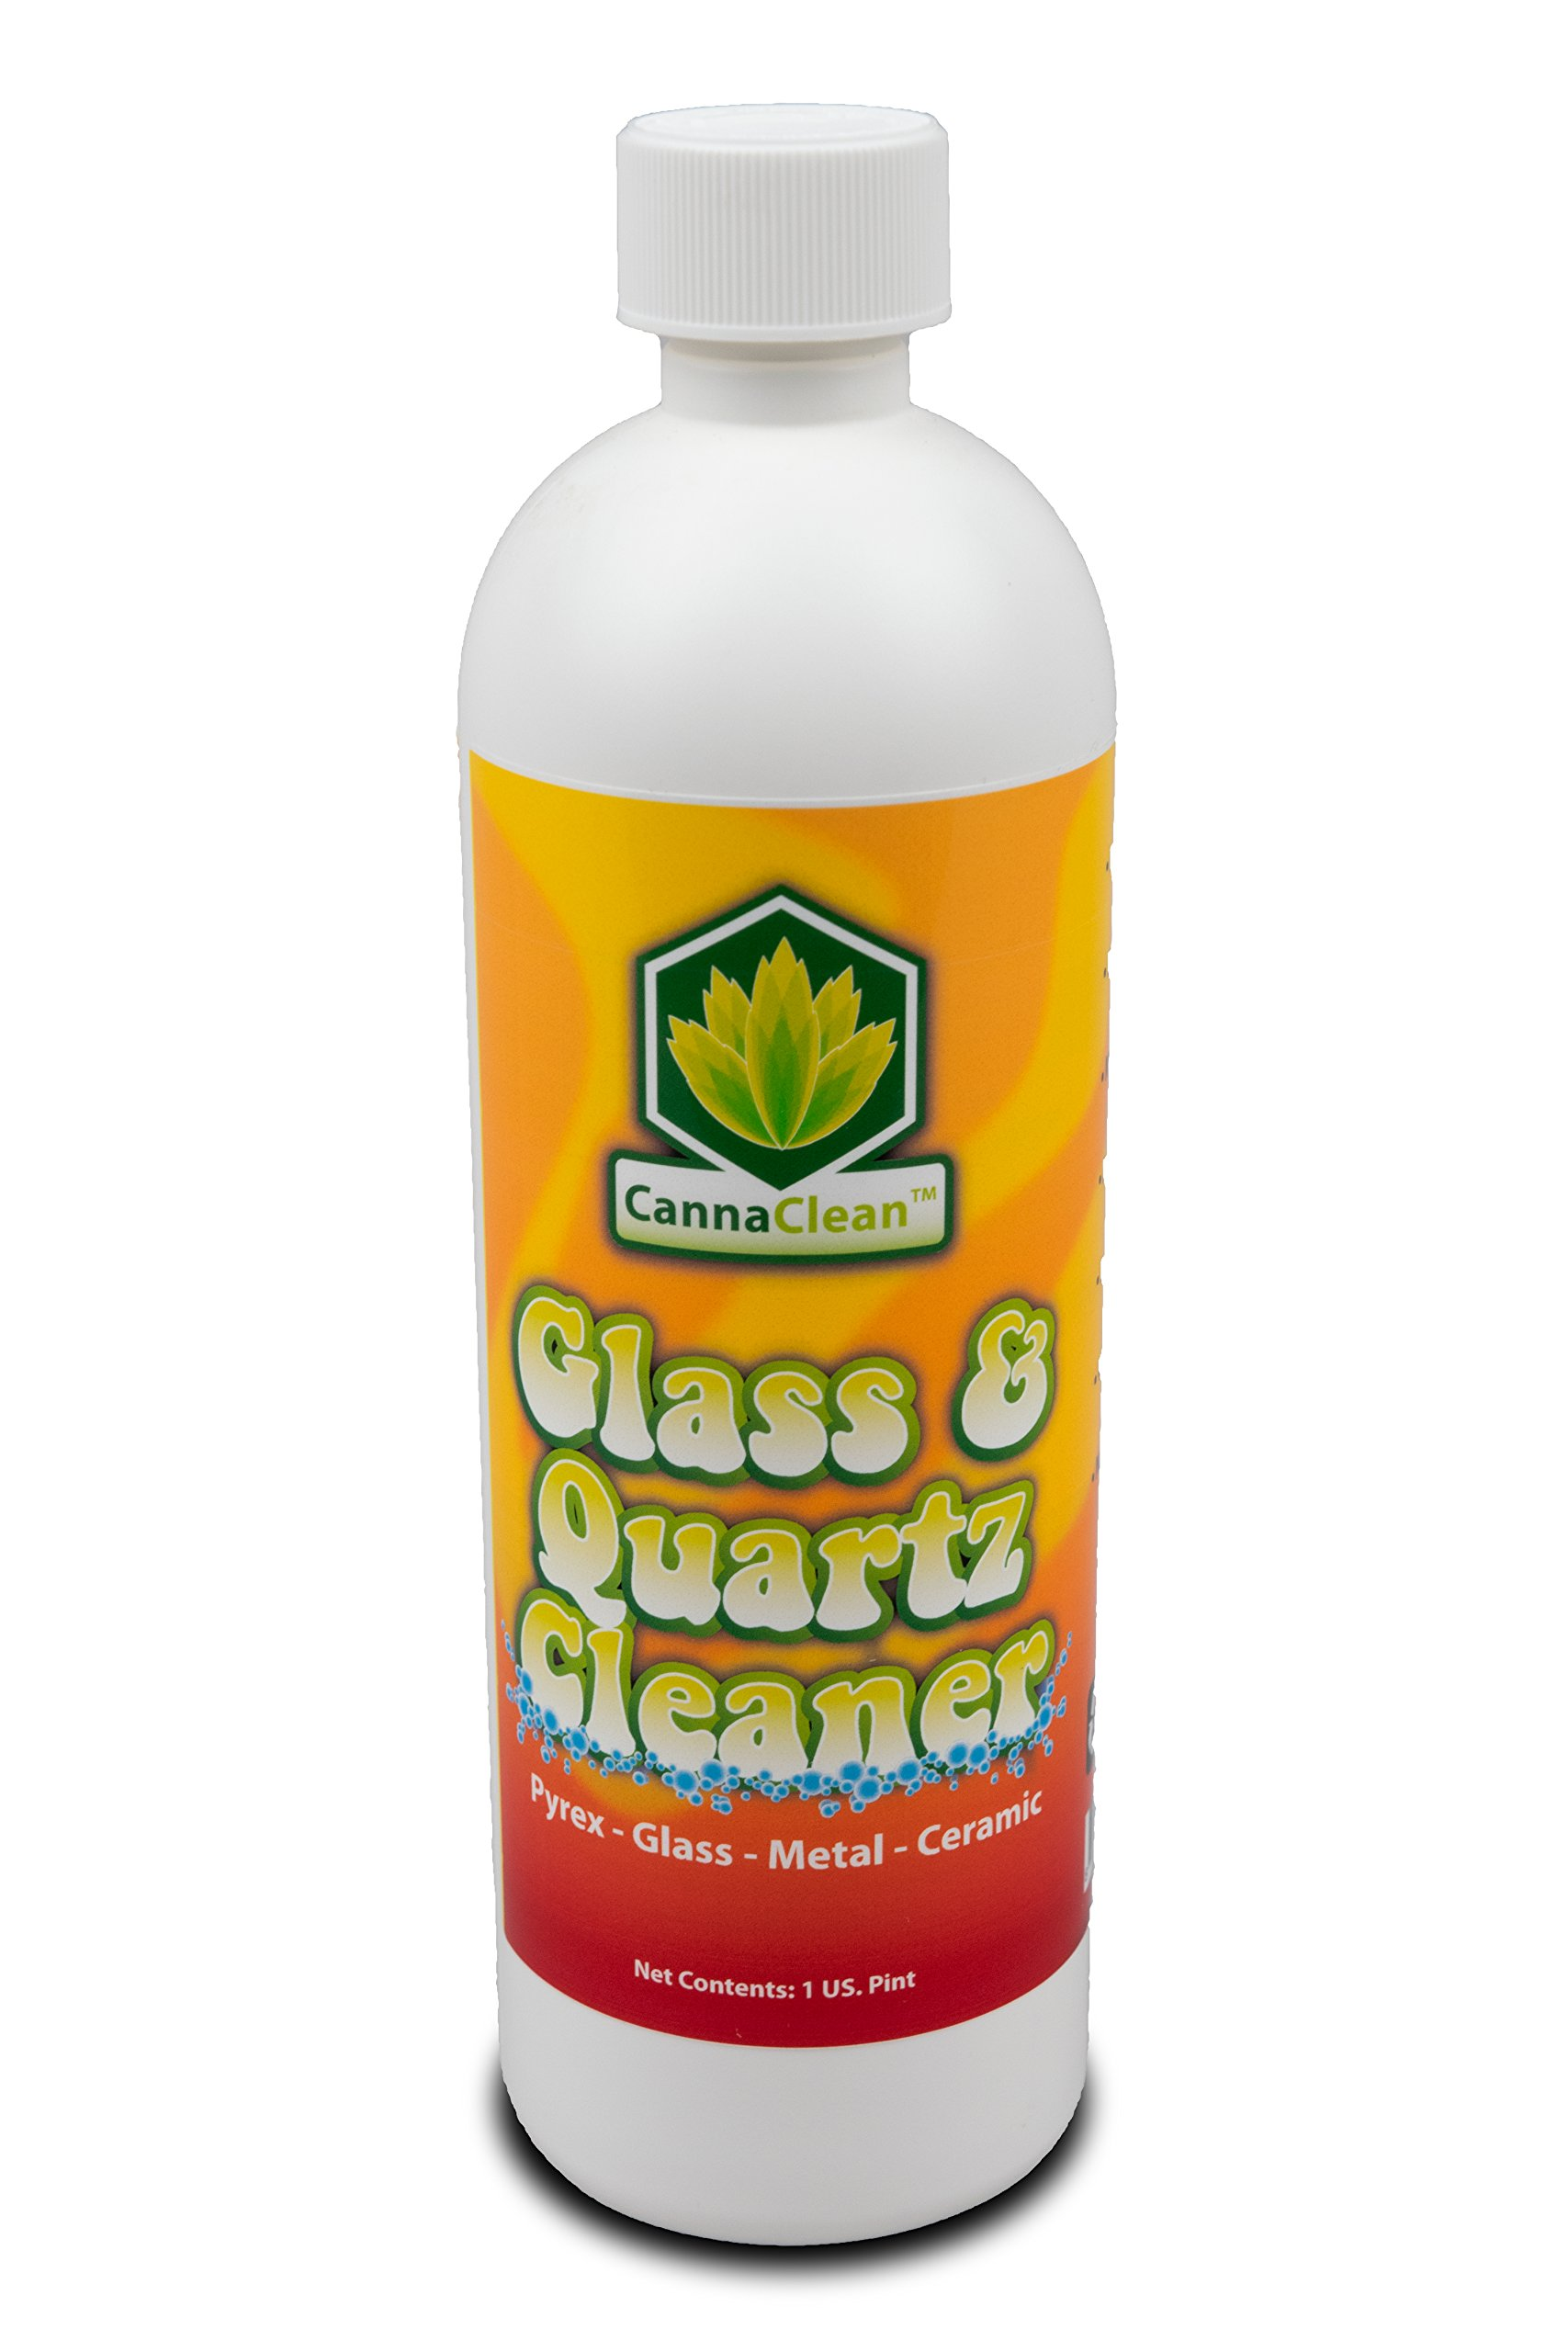 CannaClean Glass & Quartz Cleaner (Single 16oz Bottle)